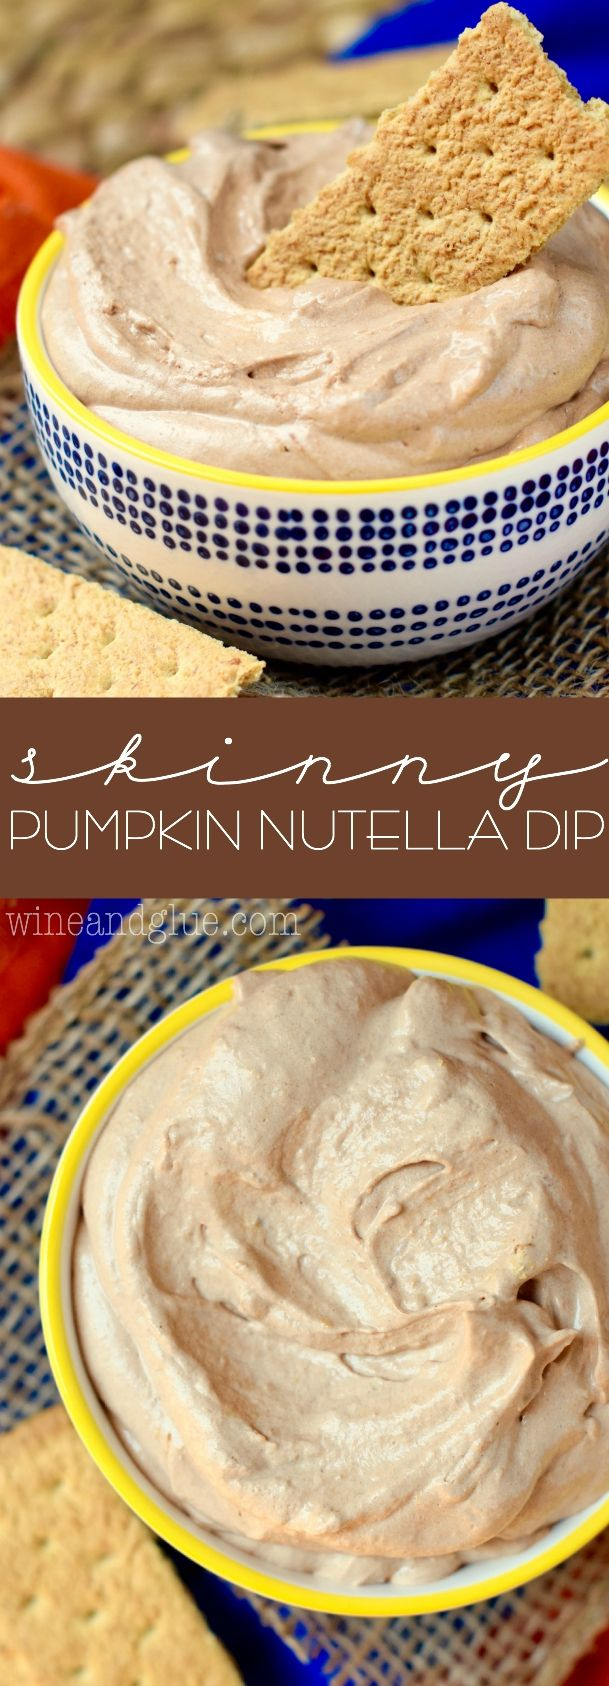 Skinny Pumpkin Nutella Dip   Three ingredients of pure deliciousness!